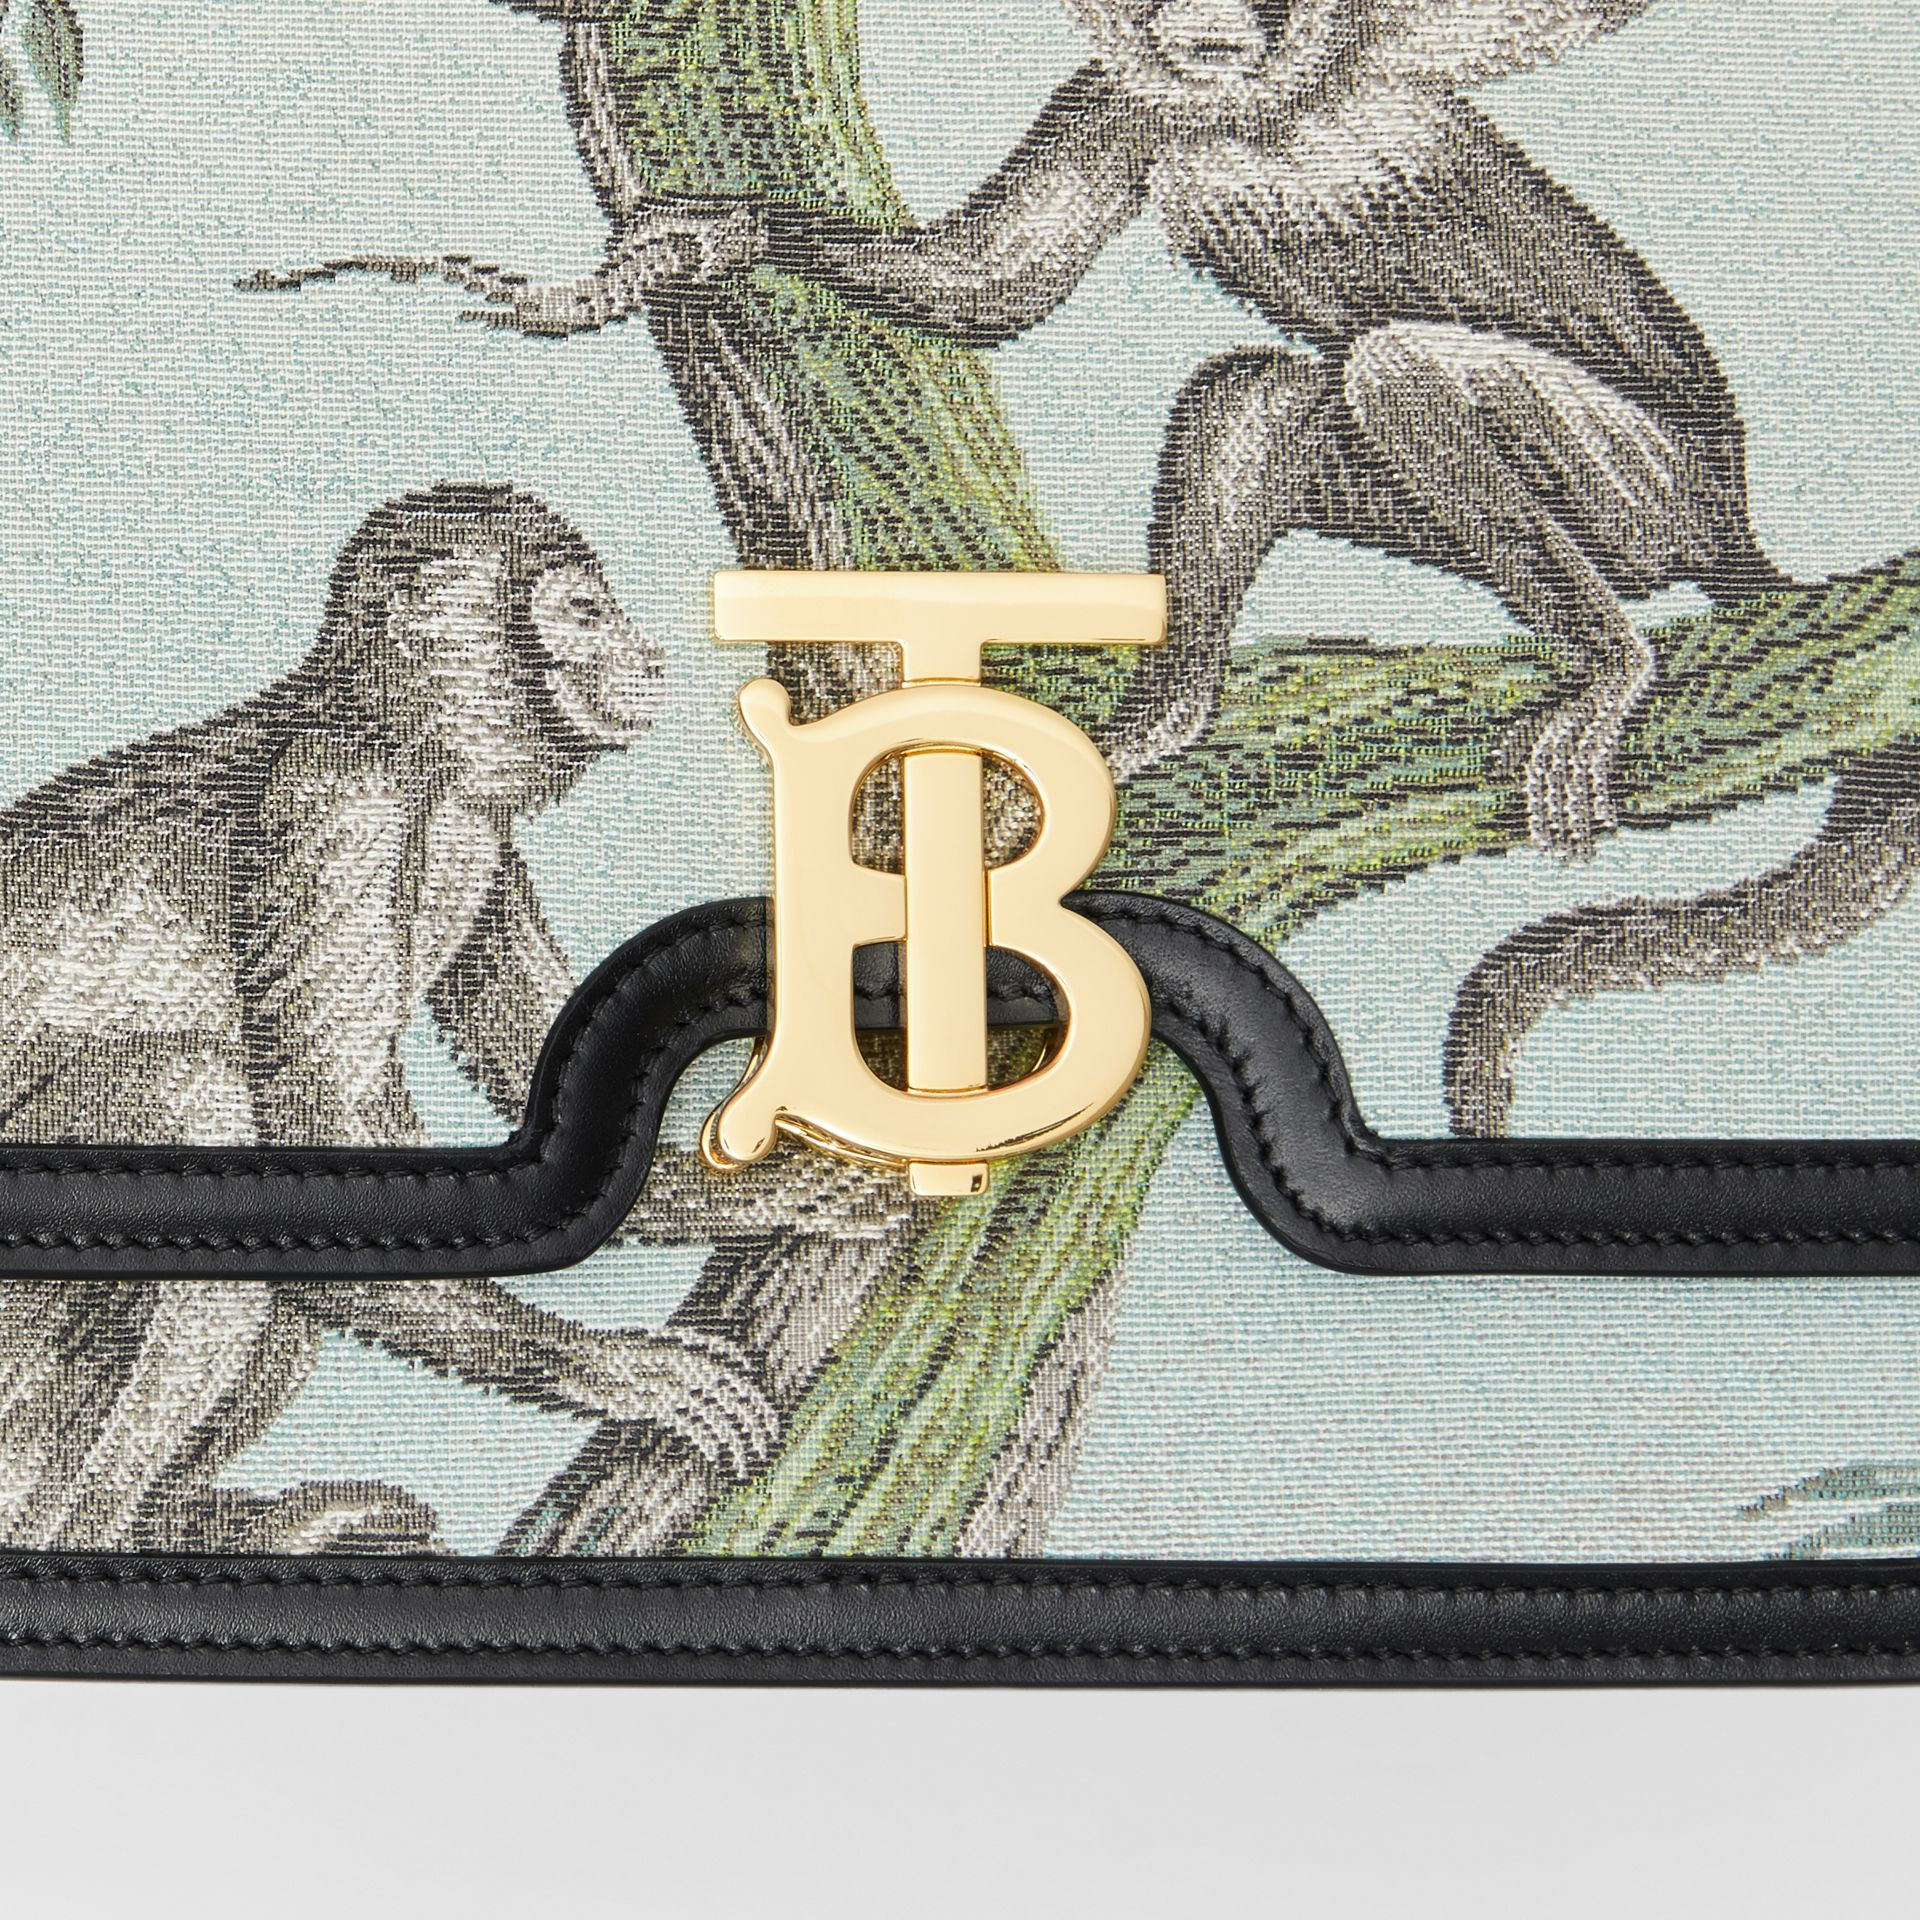 Medium Monkey Jacquard and Leather TB Bag in Black/opal Green - Women | Burberry United States - gallery image 1